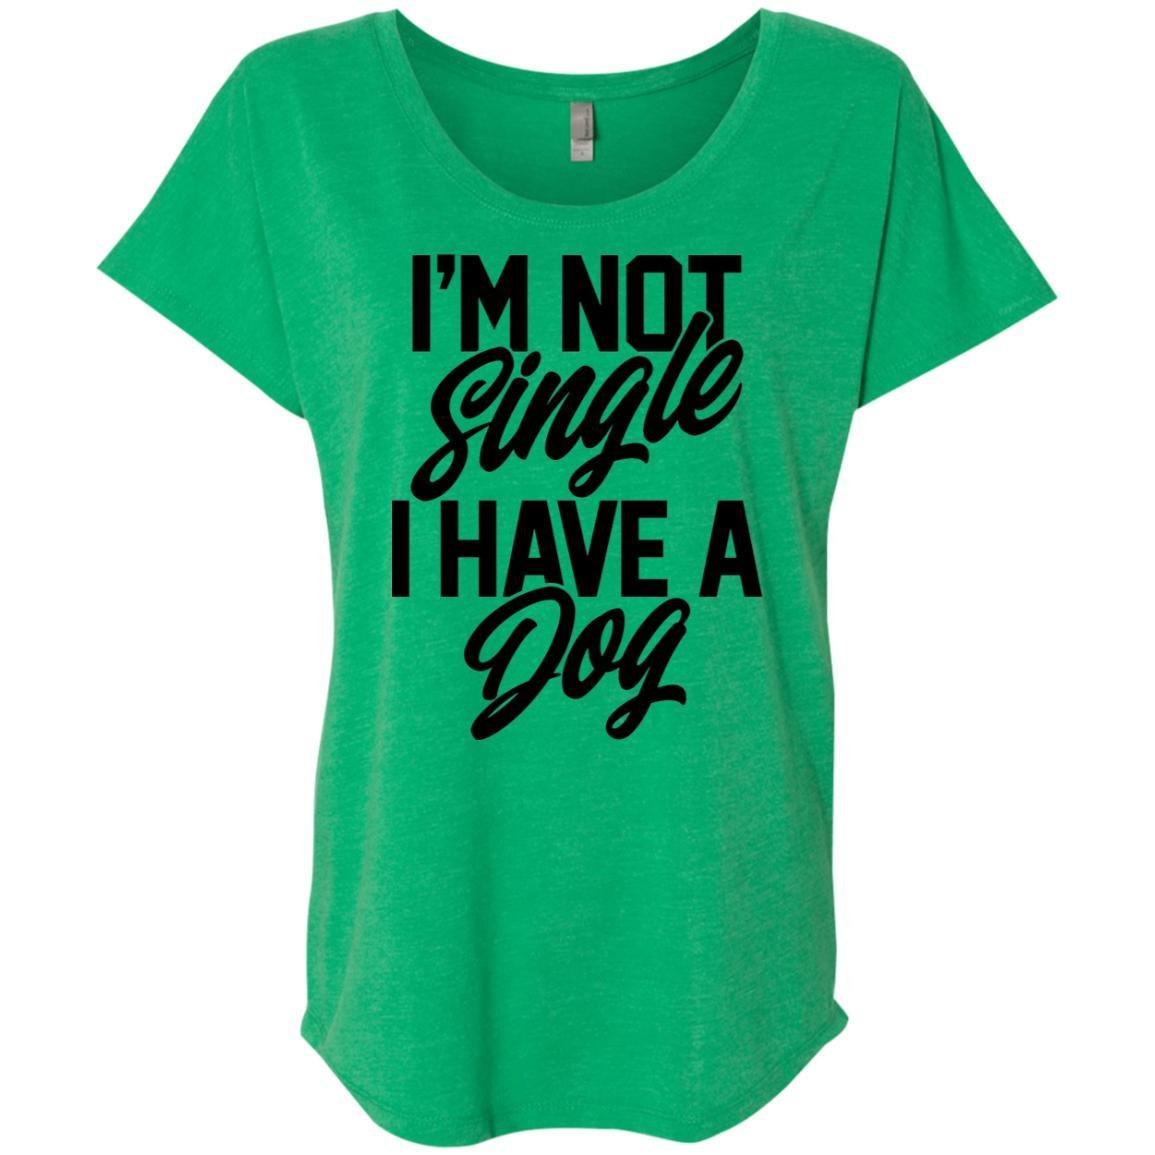 I'm Not Single I Have A Dog Slouchy T-Shirt For Women - Ohmyglad